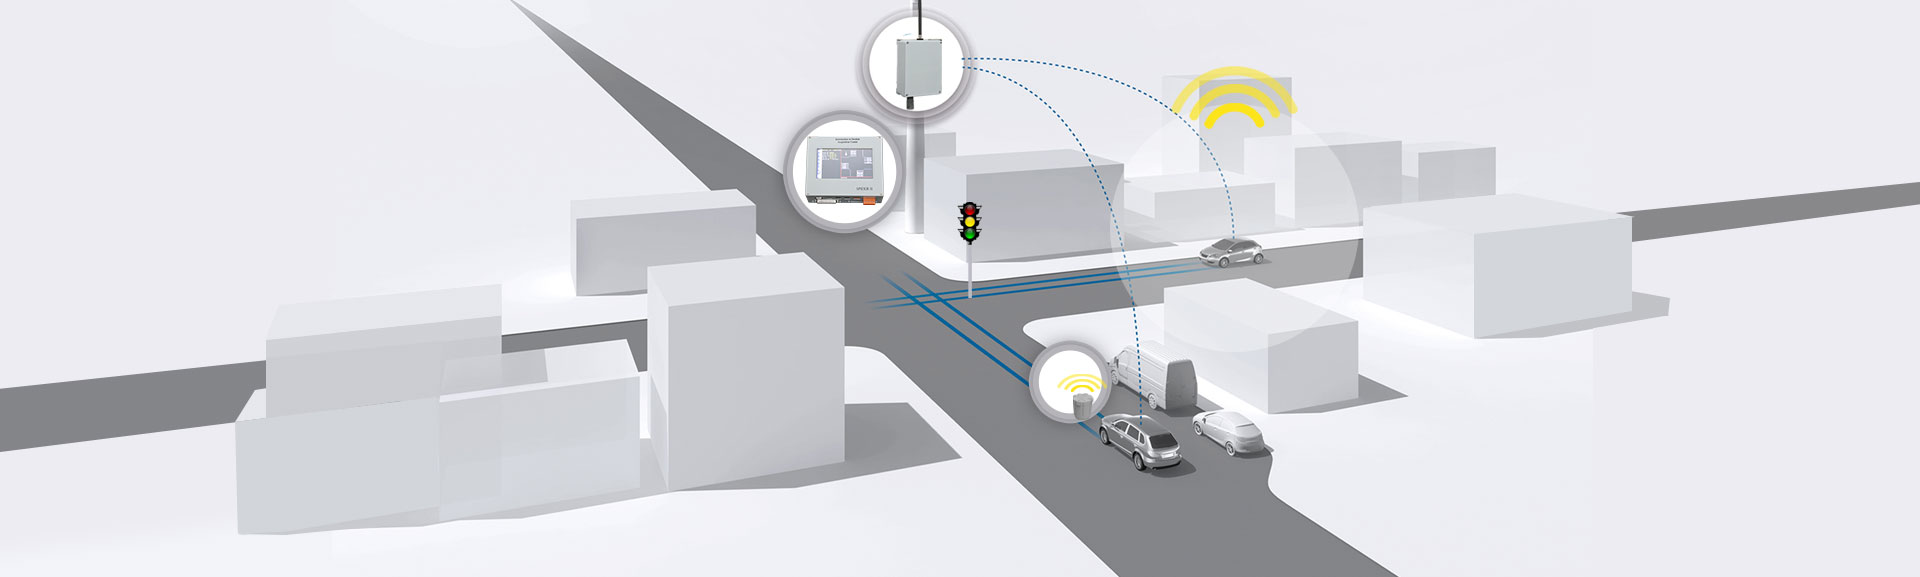 Vehicle Detection System -